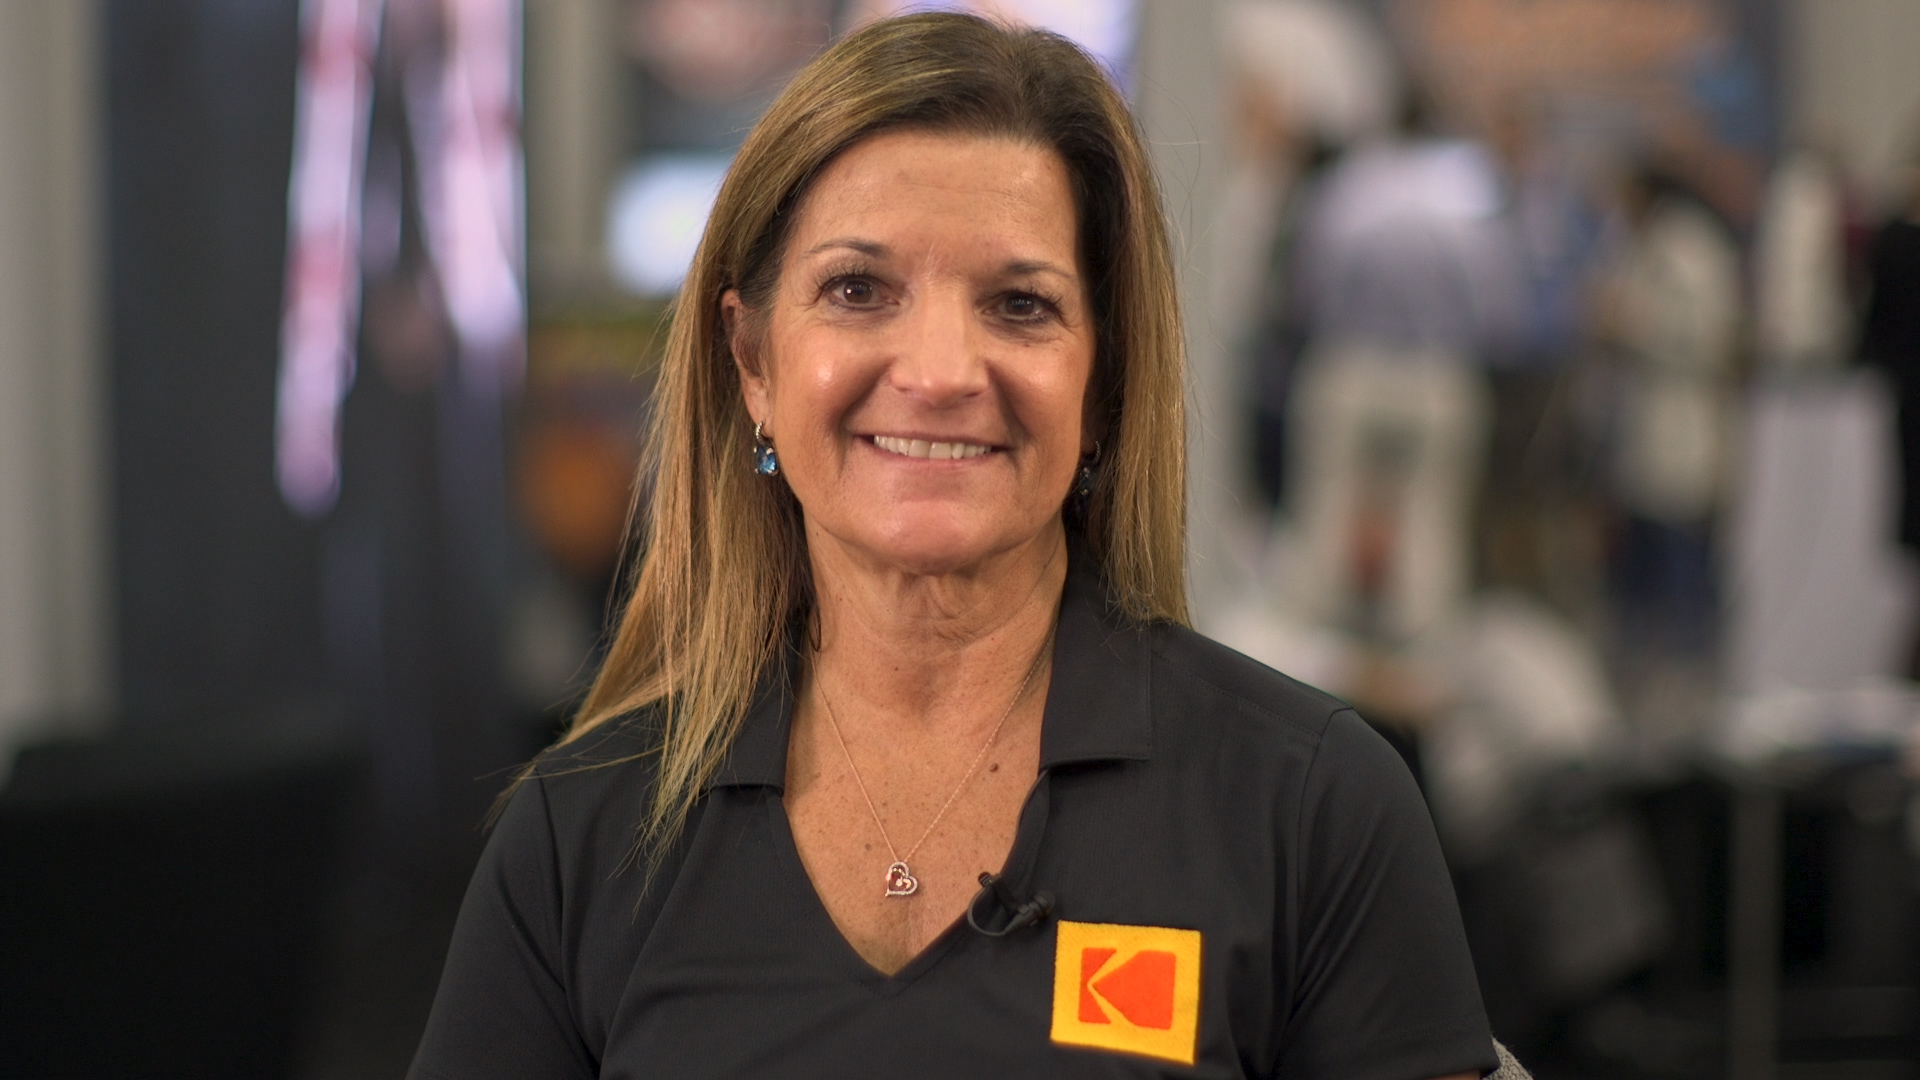 Video preview: Kodak's drupa 2020 Vision